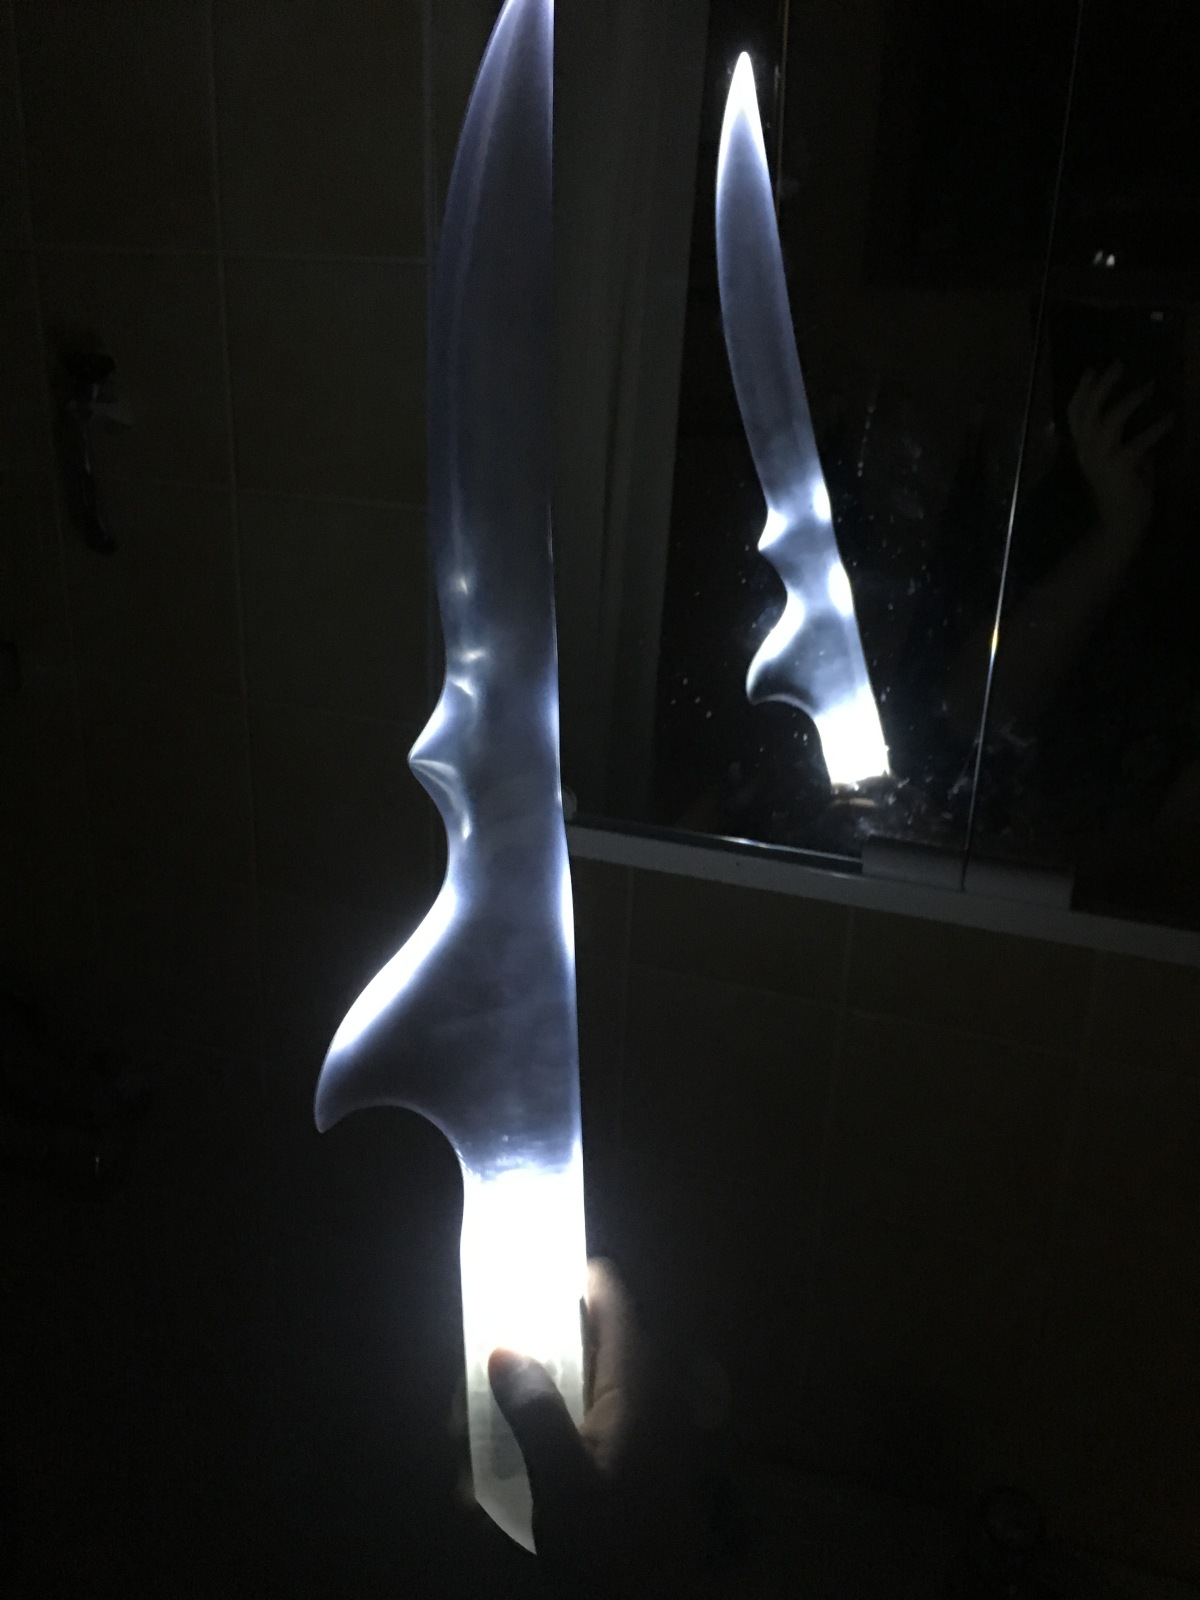 A Sneak Peek at Glowing Blades